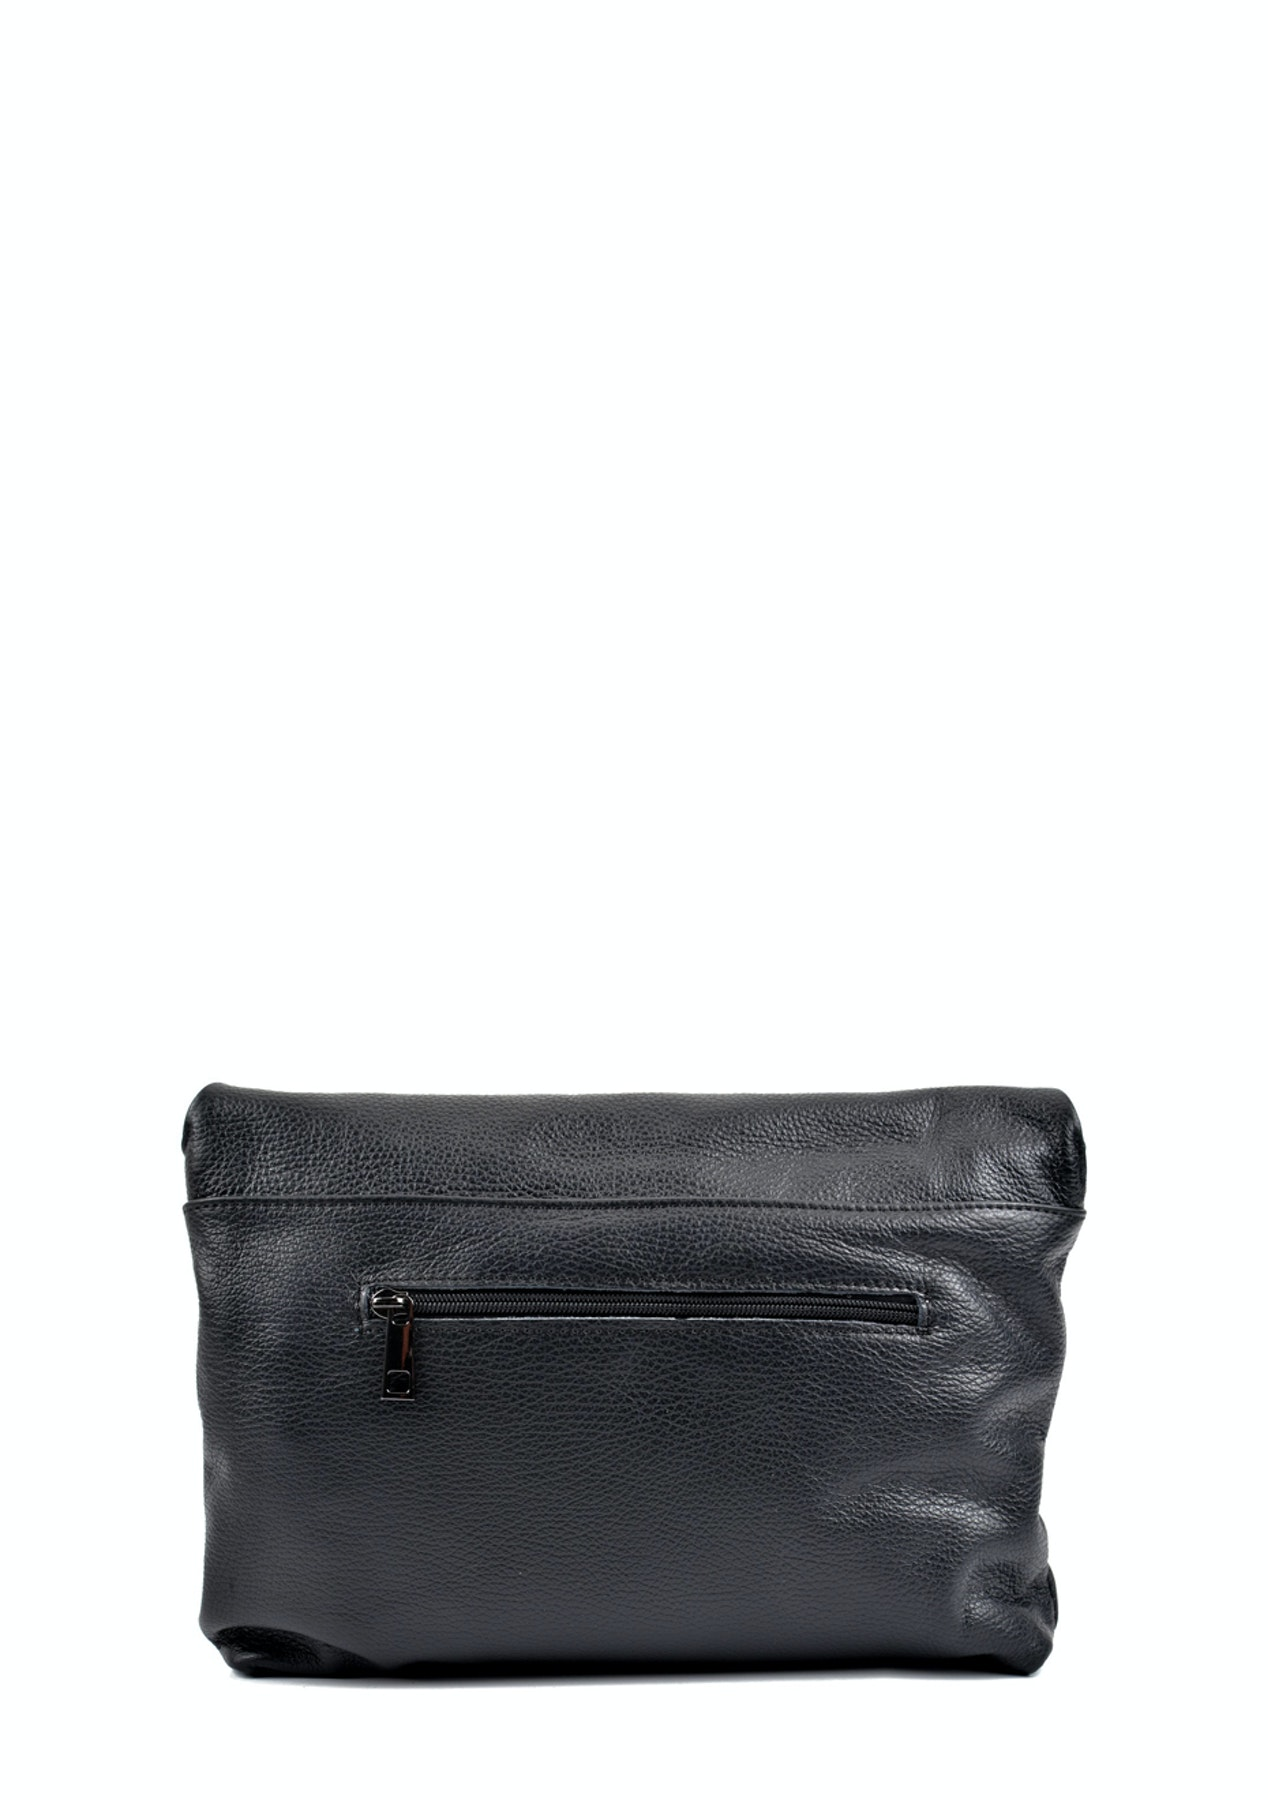 1590090ffe29 Roberta M - Crossbody Bag - Nero - Best Selling European Made Leather Bags  - Onceit